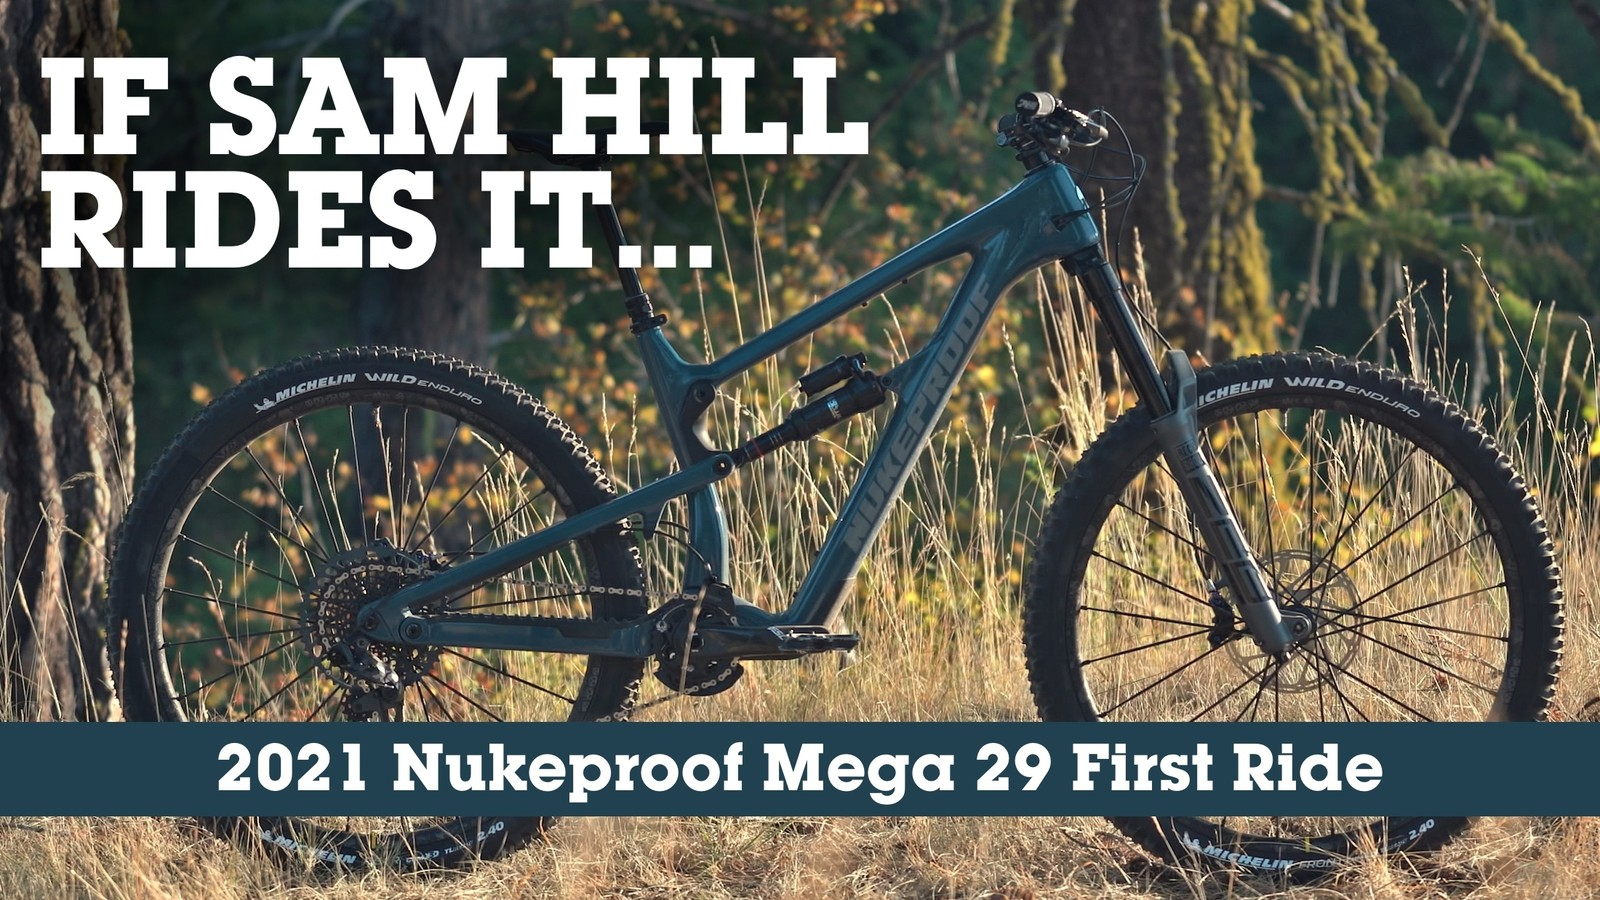 Blown Away - Nukeproof's New Mega 290 RS Delivers on All Fronts